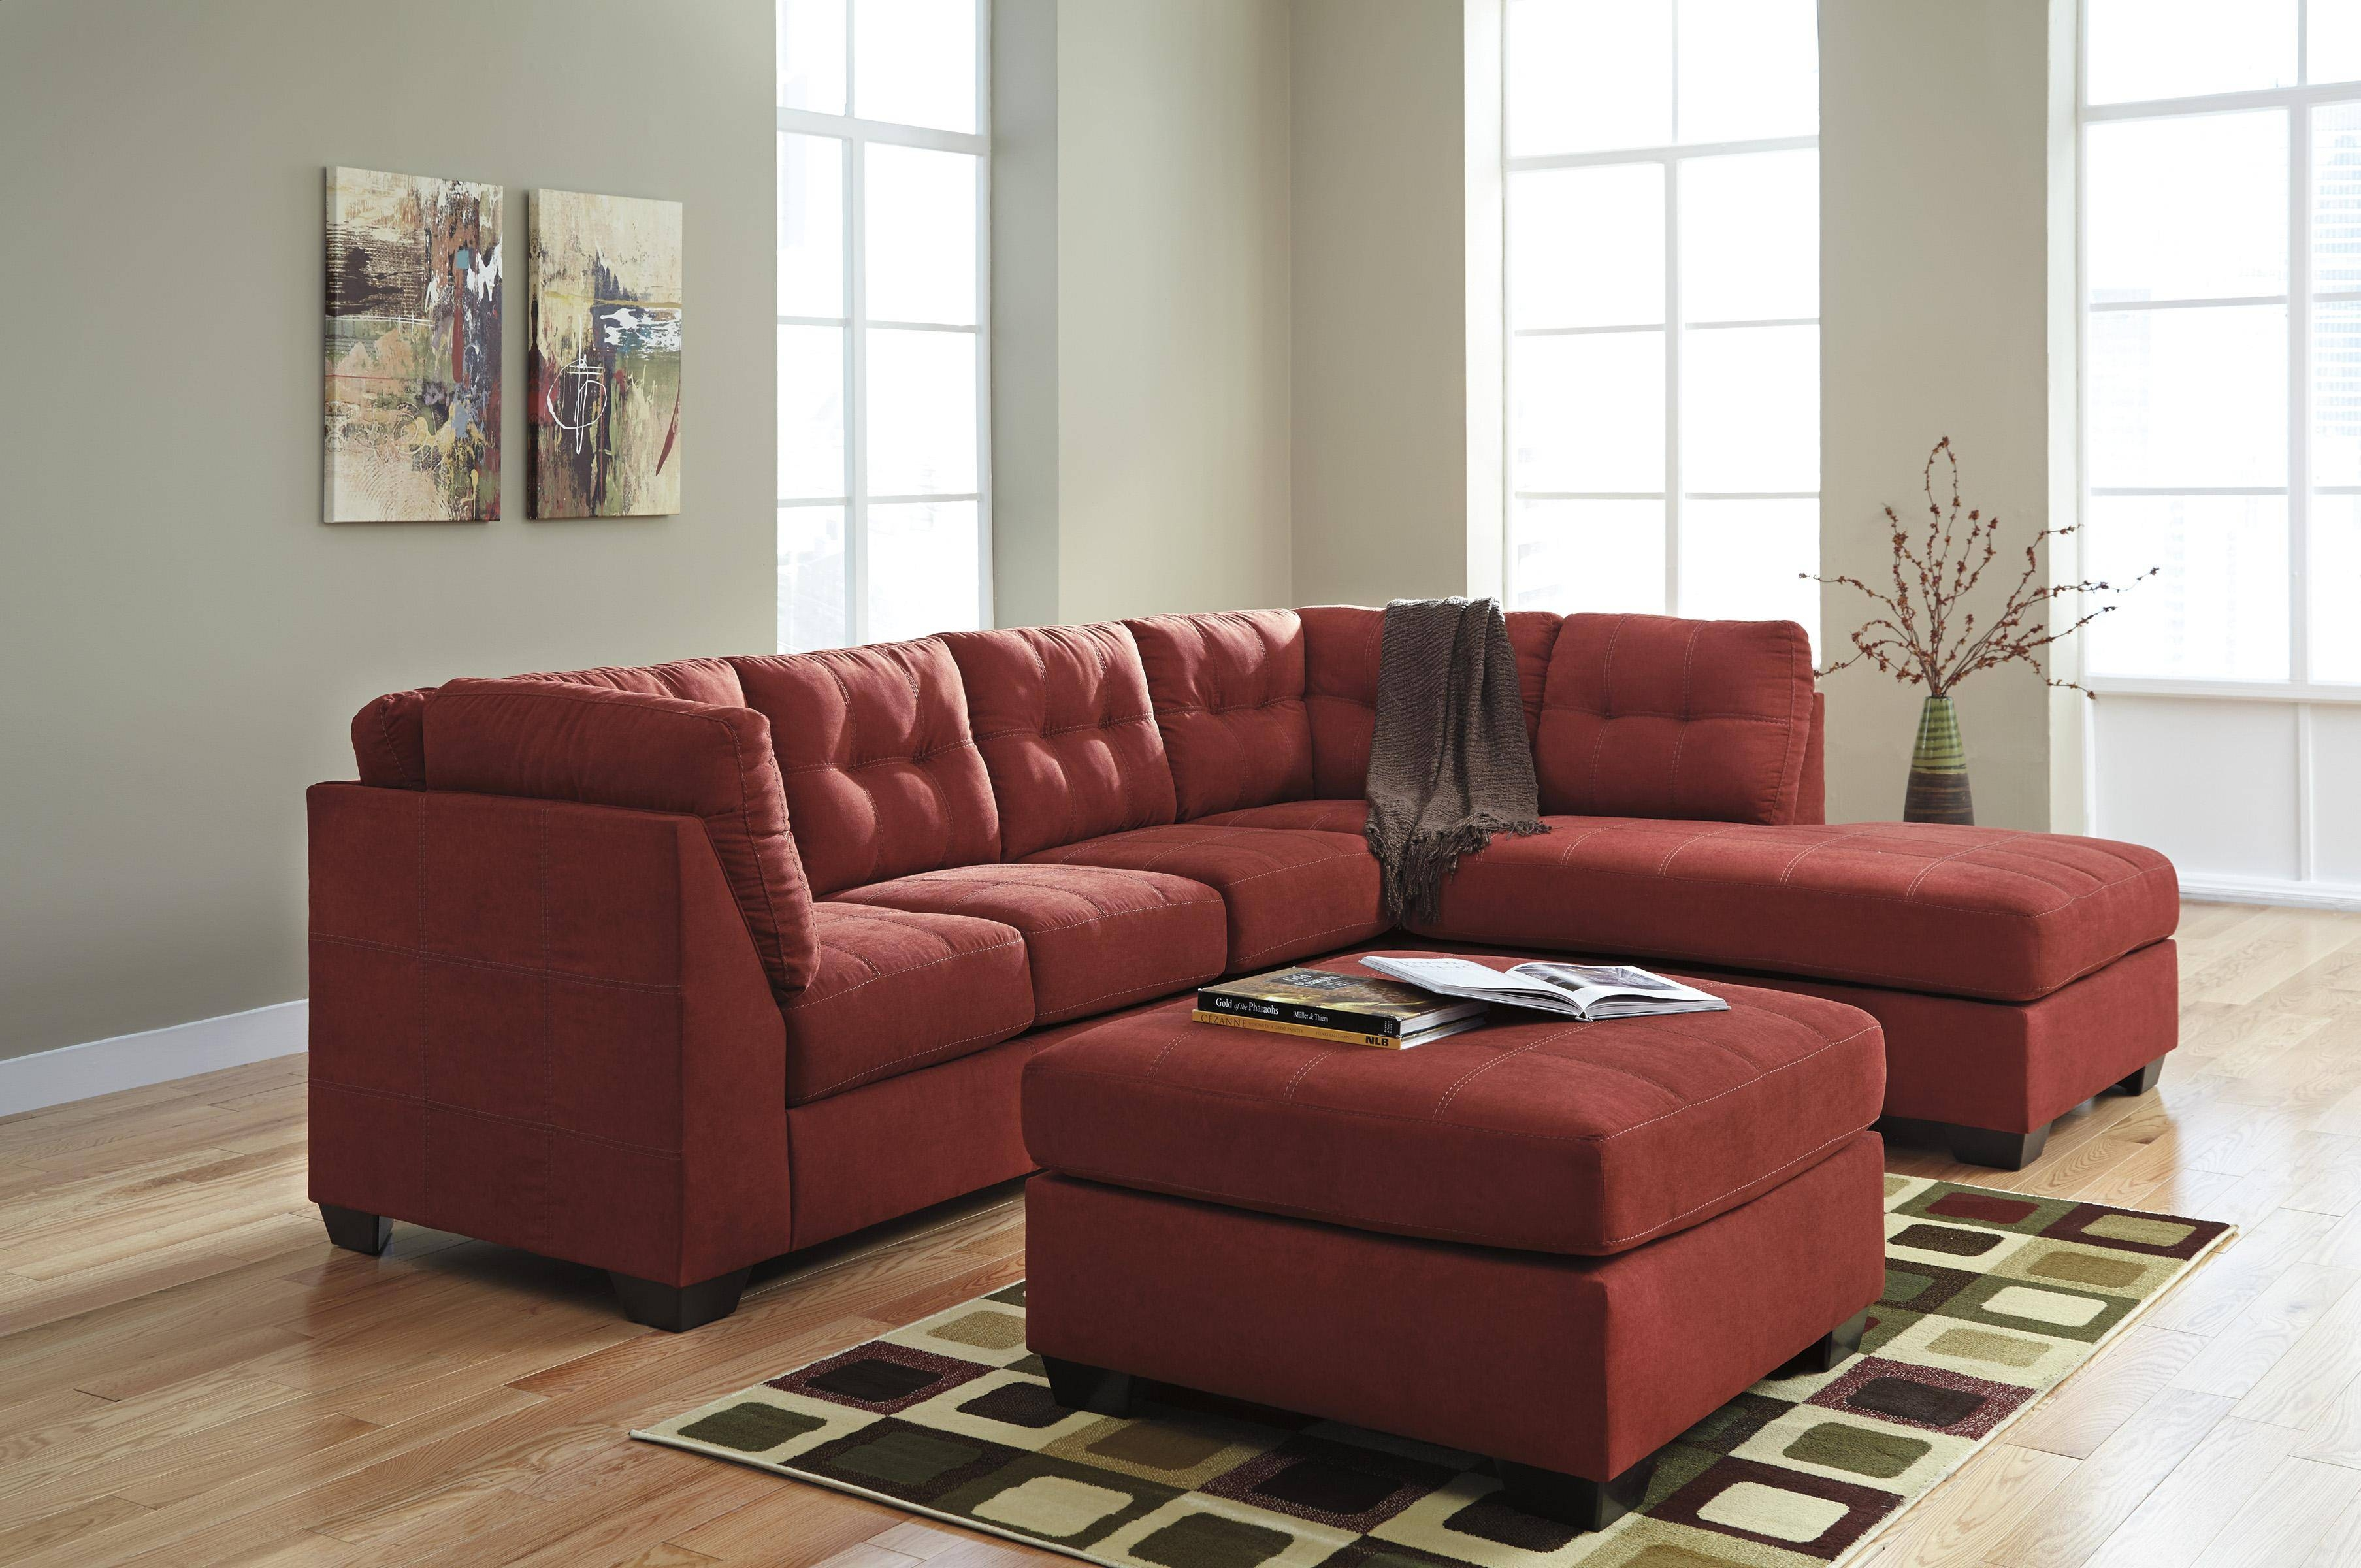 Benchcraft Maier – Sienna 2 Piece Sectional W/ Sleeper Sofa With Regard To Sectional Sofas With Sleeper And Chaise (View 5 of 30)